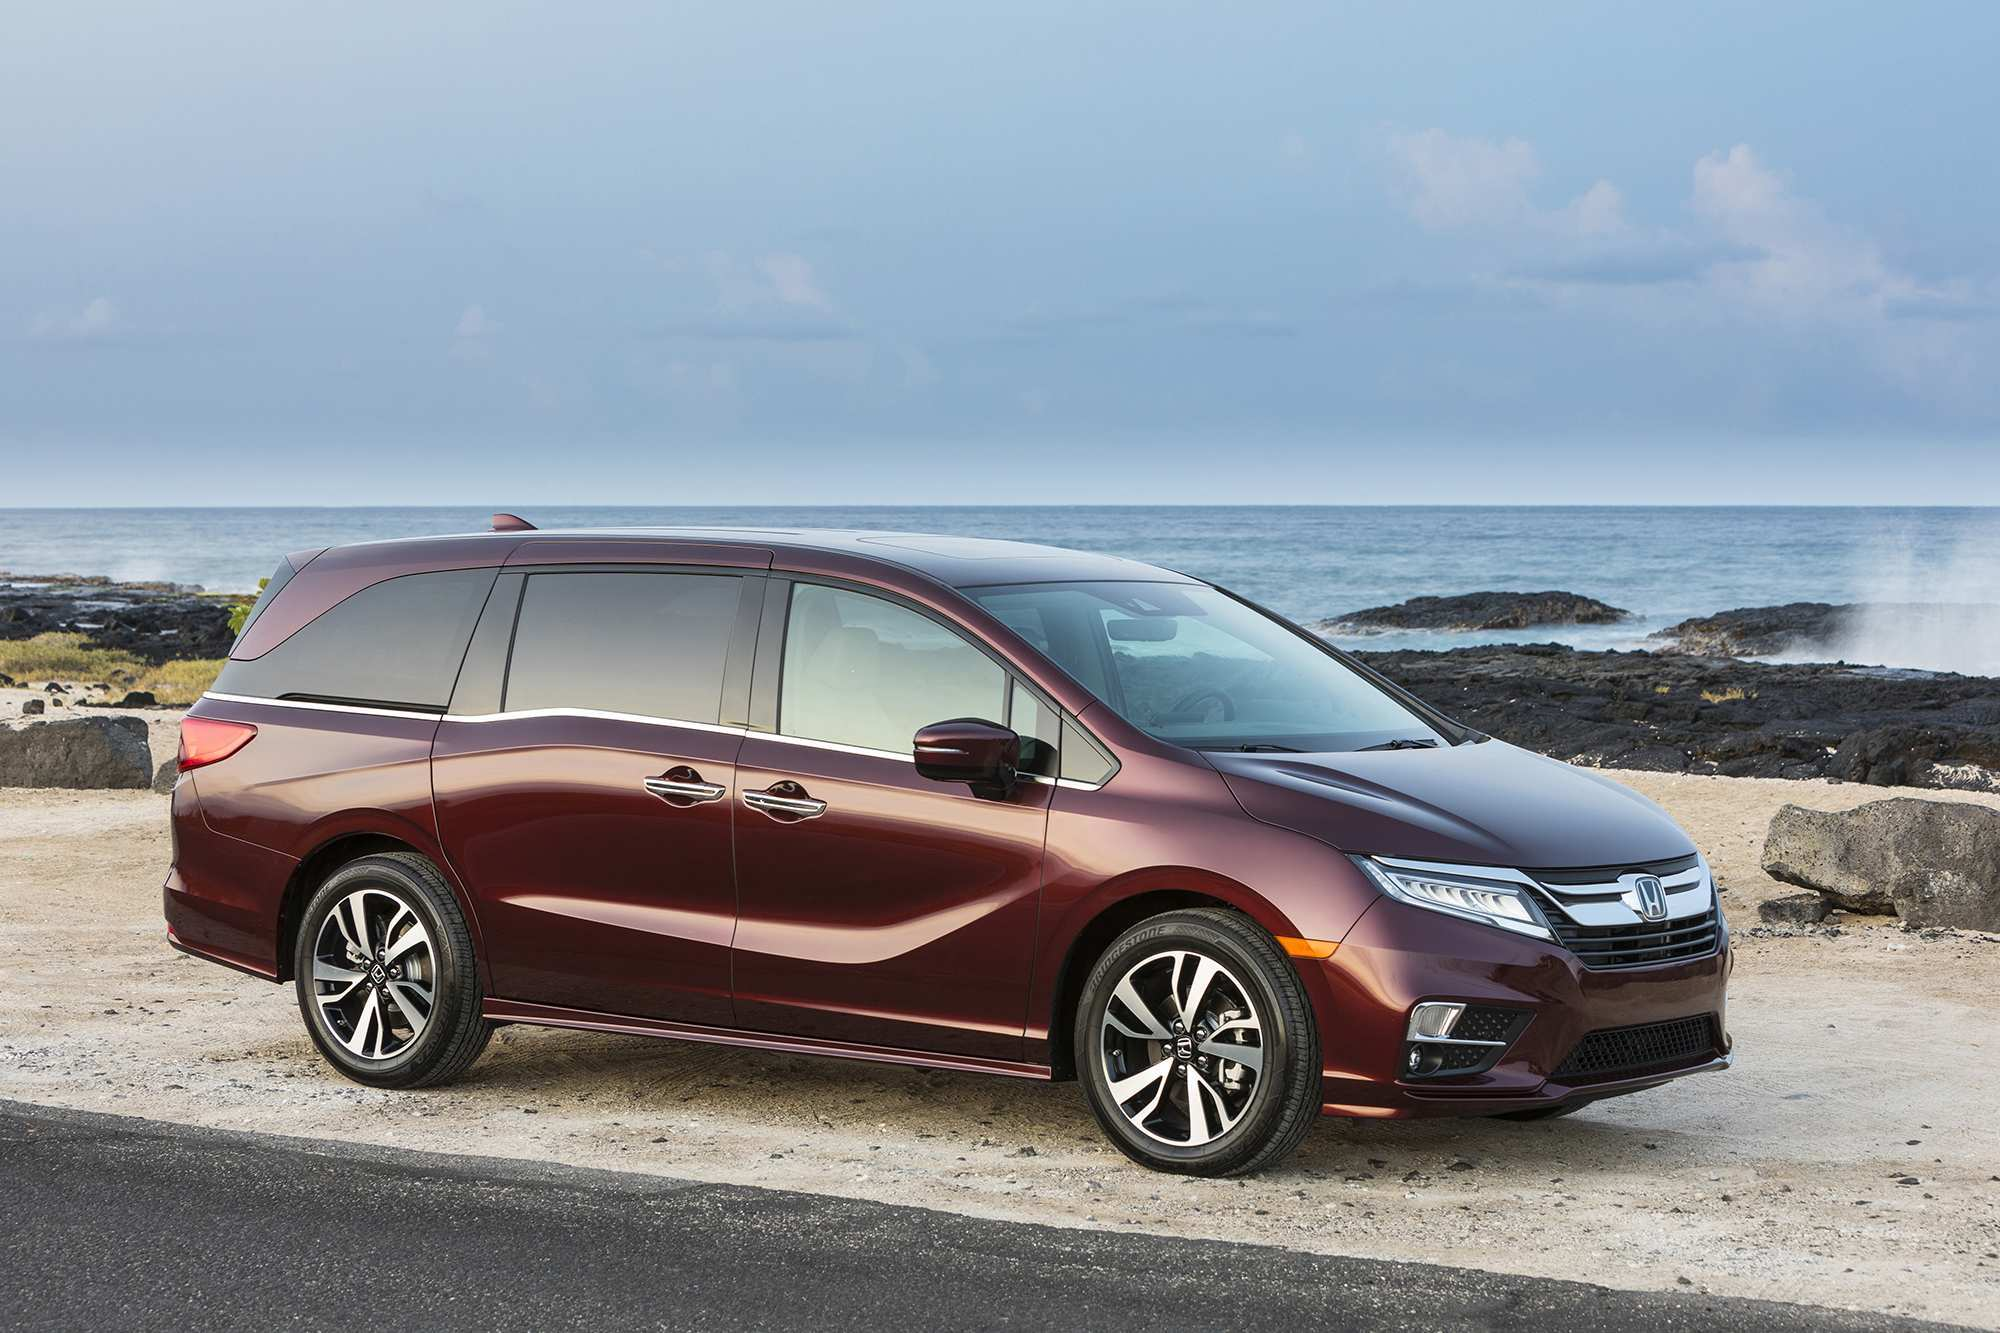 65 New When Will 2020 Honda Odyssey Come Out Concept And Review